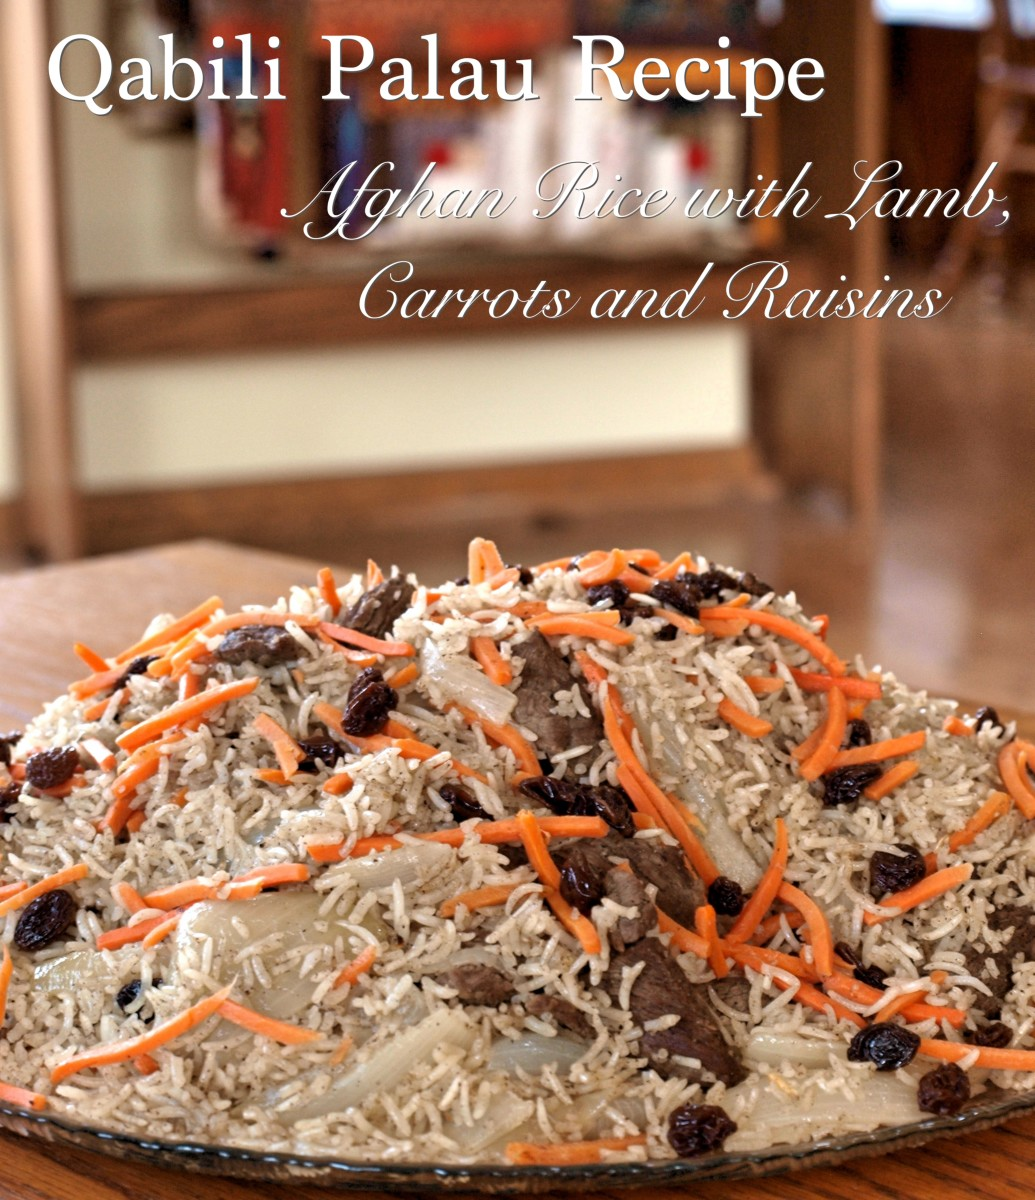 Learn to make this delicious gluten-free Kabuli Pulao recipe with Afghan rice, raisins, lamb, and carrots.